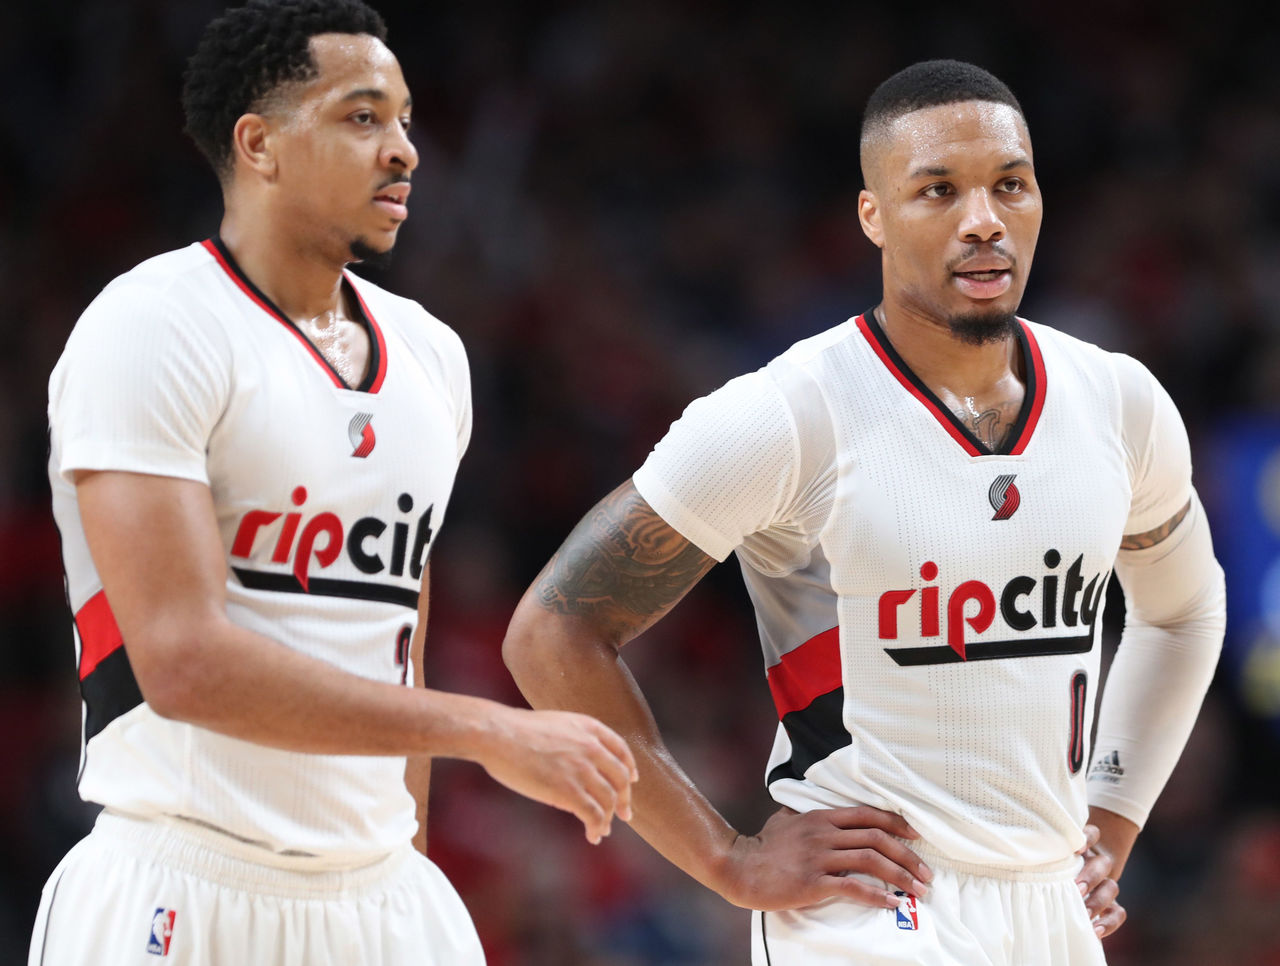 Cropped_2017-04-25t044700z_1548320206_nocid_rtrmadp_3_nba-playoffs-golden-state-warriors-at-portland-trail-blazers